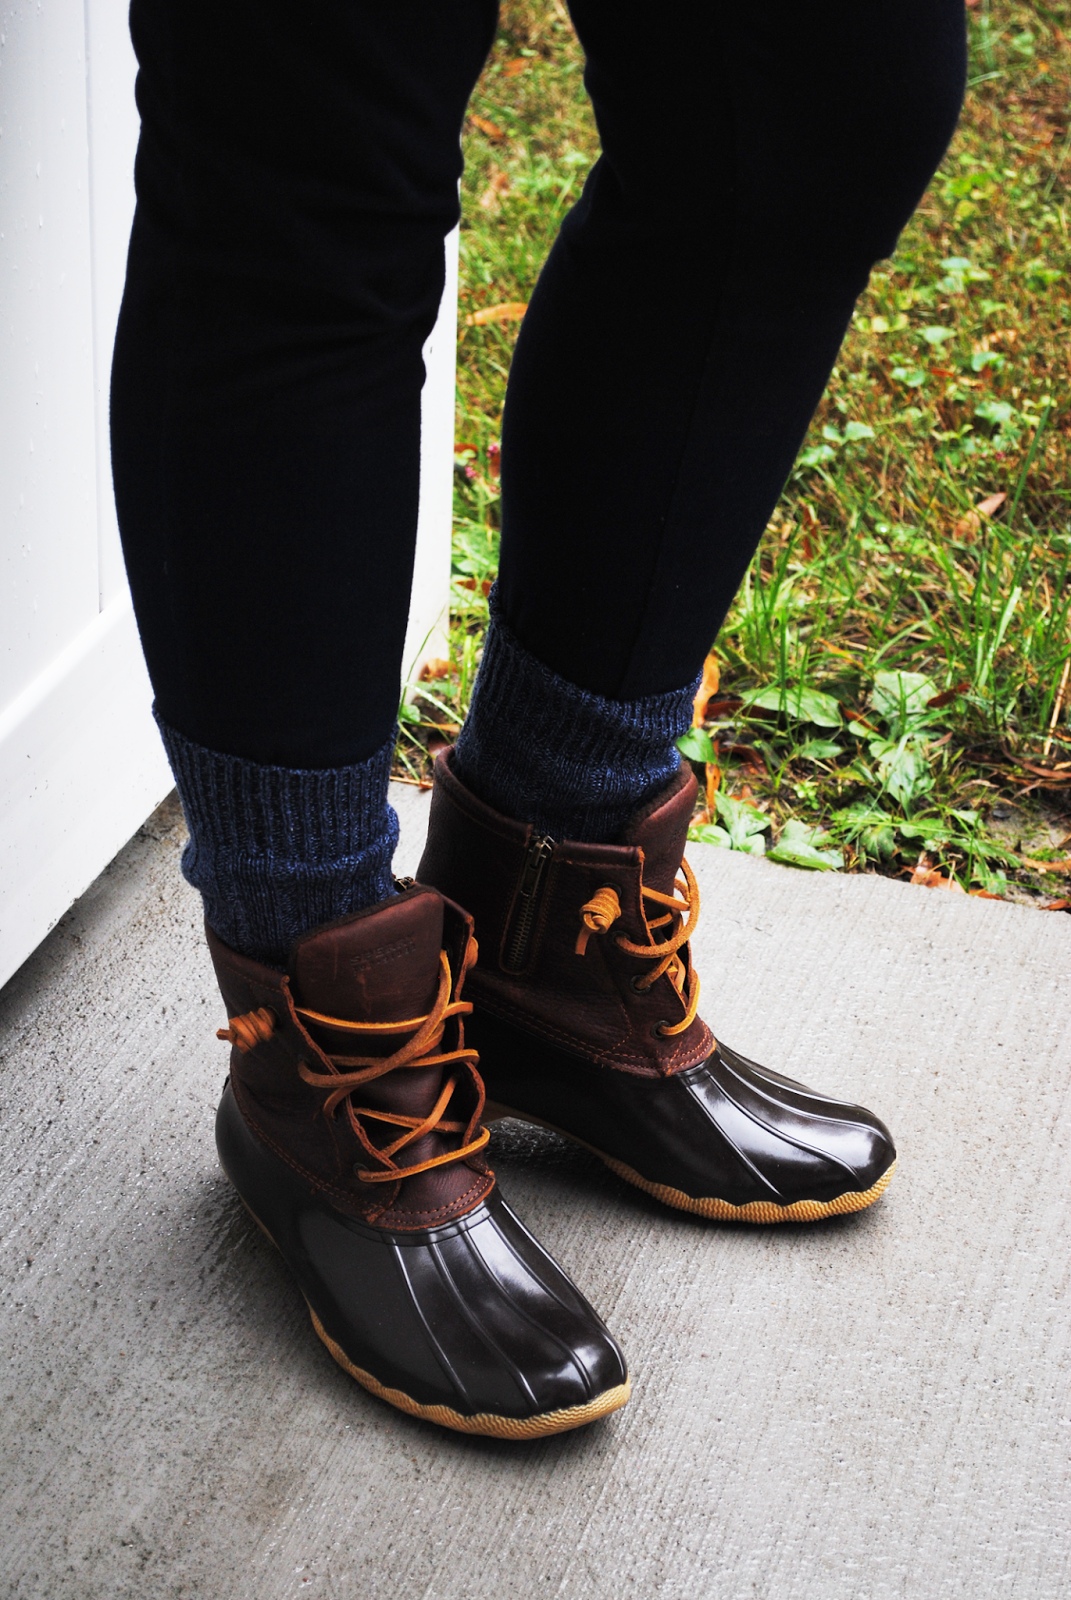 Truly Yours A Plaid Herringbone Duck Boots